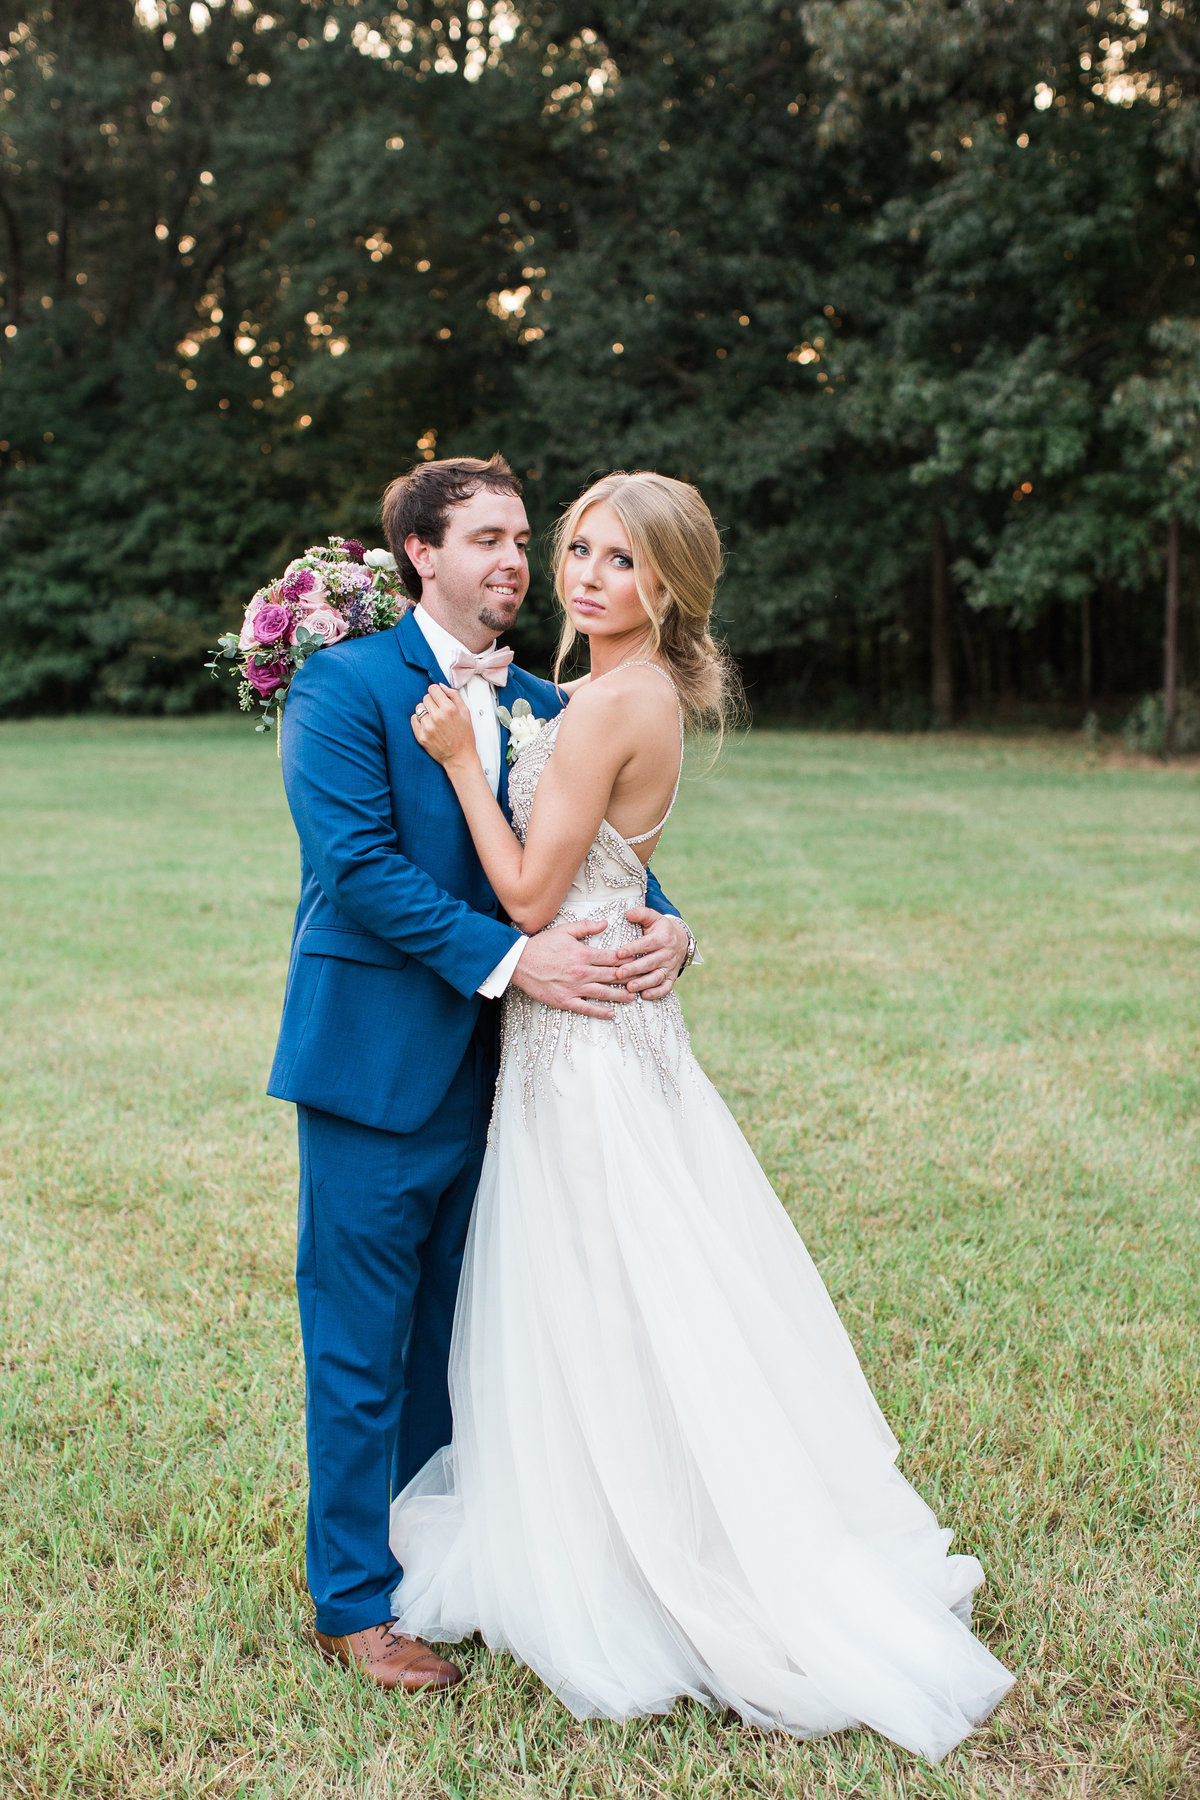 Eden & Will Wedding_Lindsay Ott Photography_Mississippi Wedding Photographer112